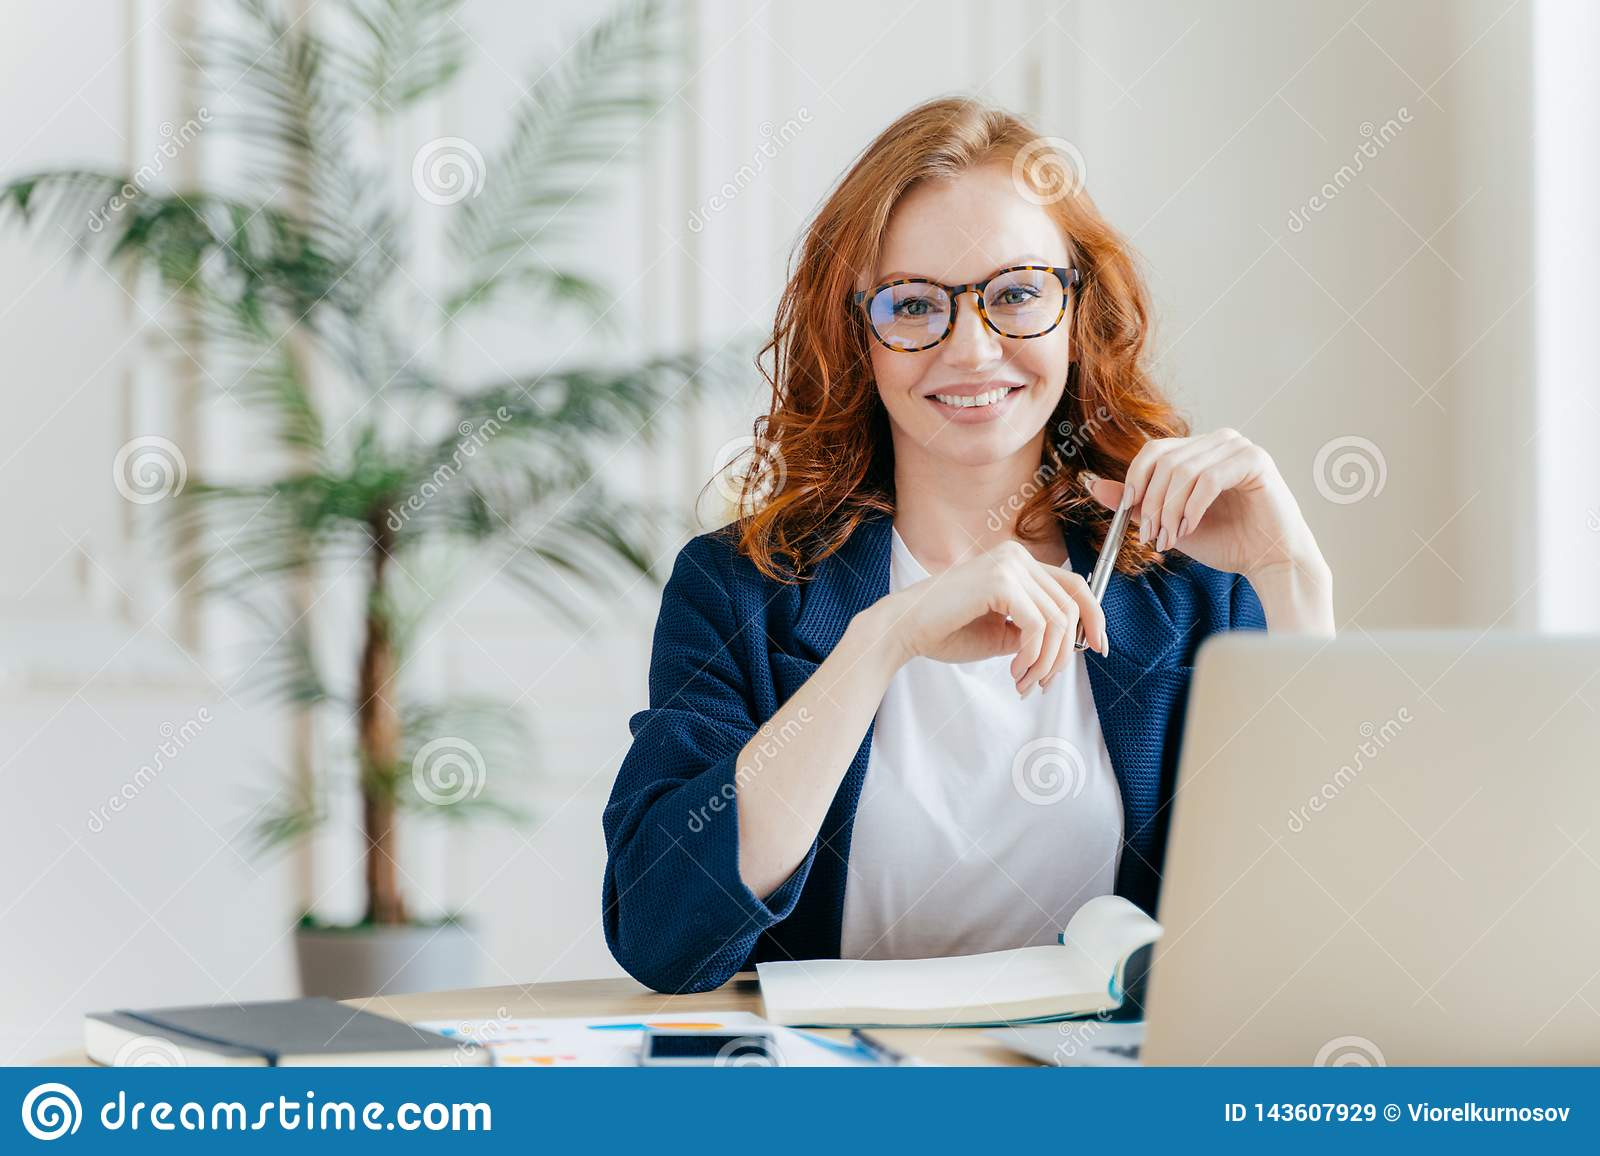 Portrait of happy redhaired woman employee in optical glasses, has satisfied expression, works with modern gadgets, waits for